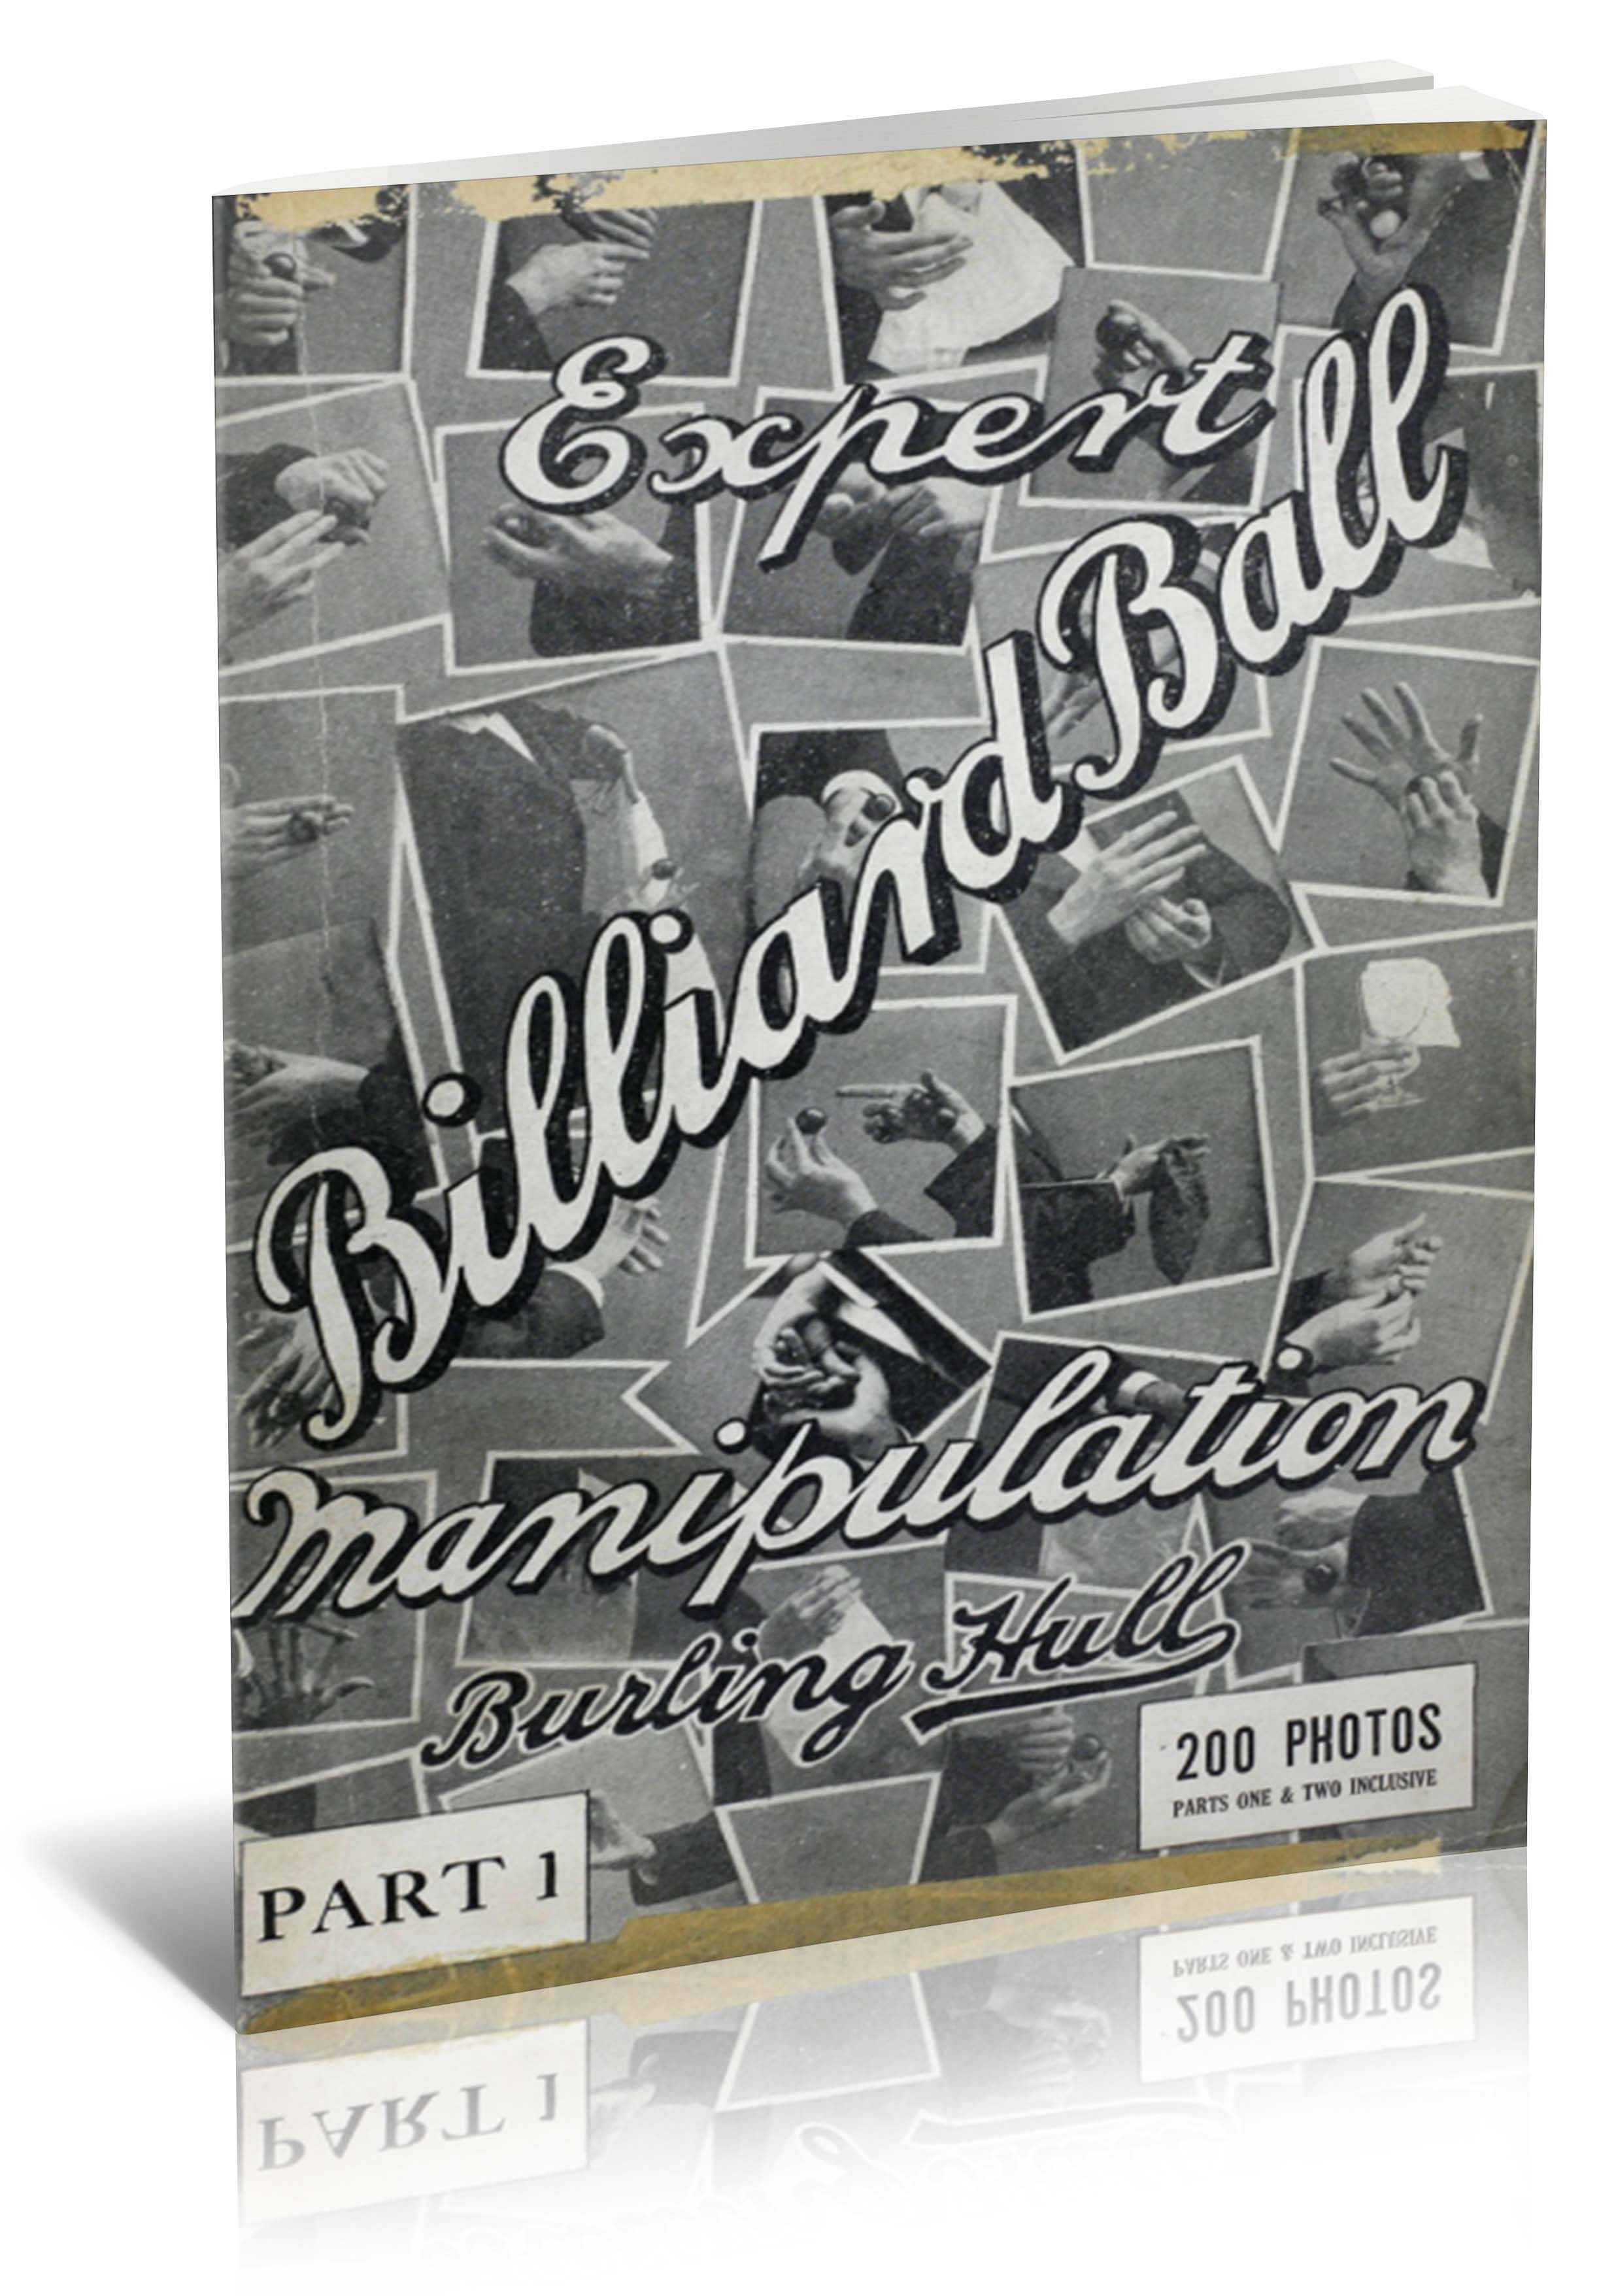 Expert Billiard Ball Manipulation 1 - magic